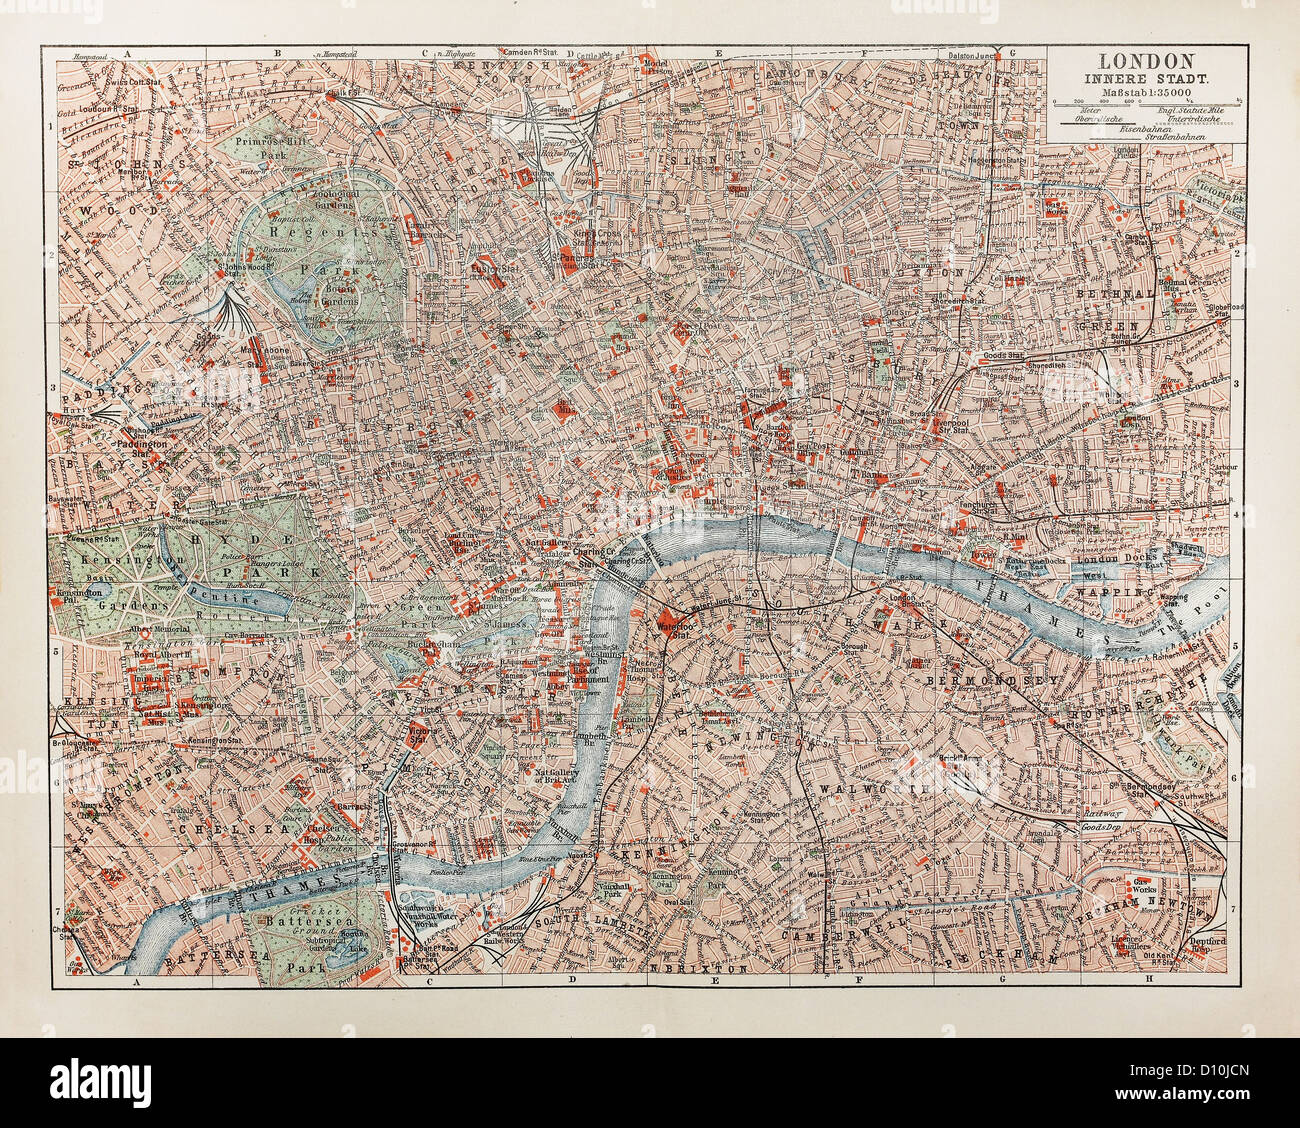 Vintage map of London at  the end of 19th century - Stock Image